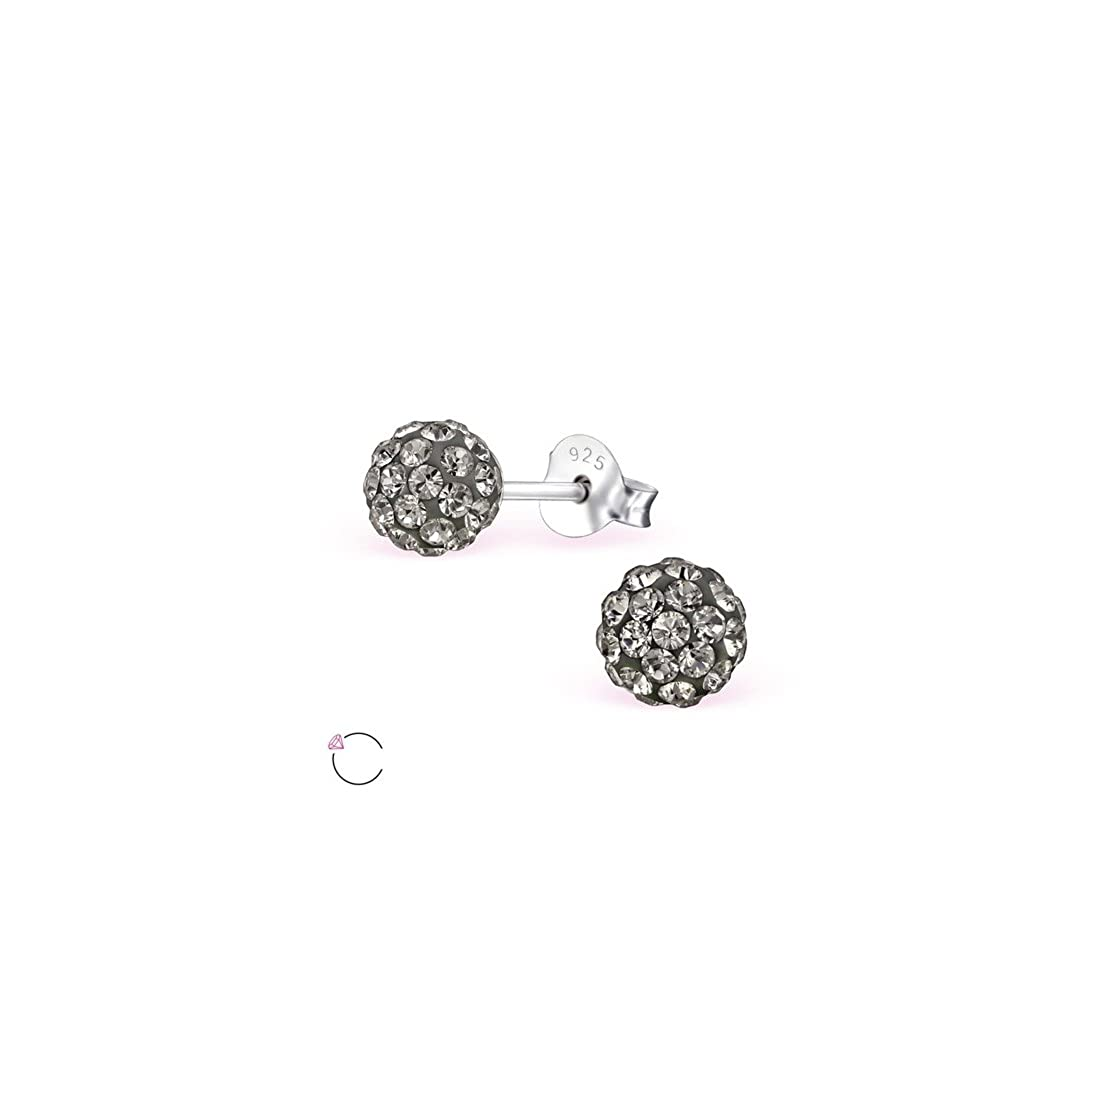 Ball Ear Studs 925 Sterling Silver For Women and Girls